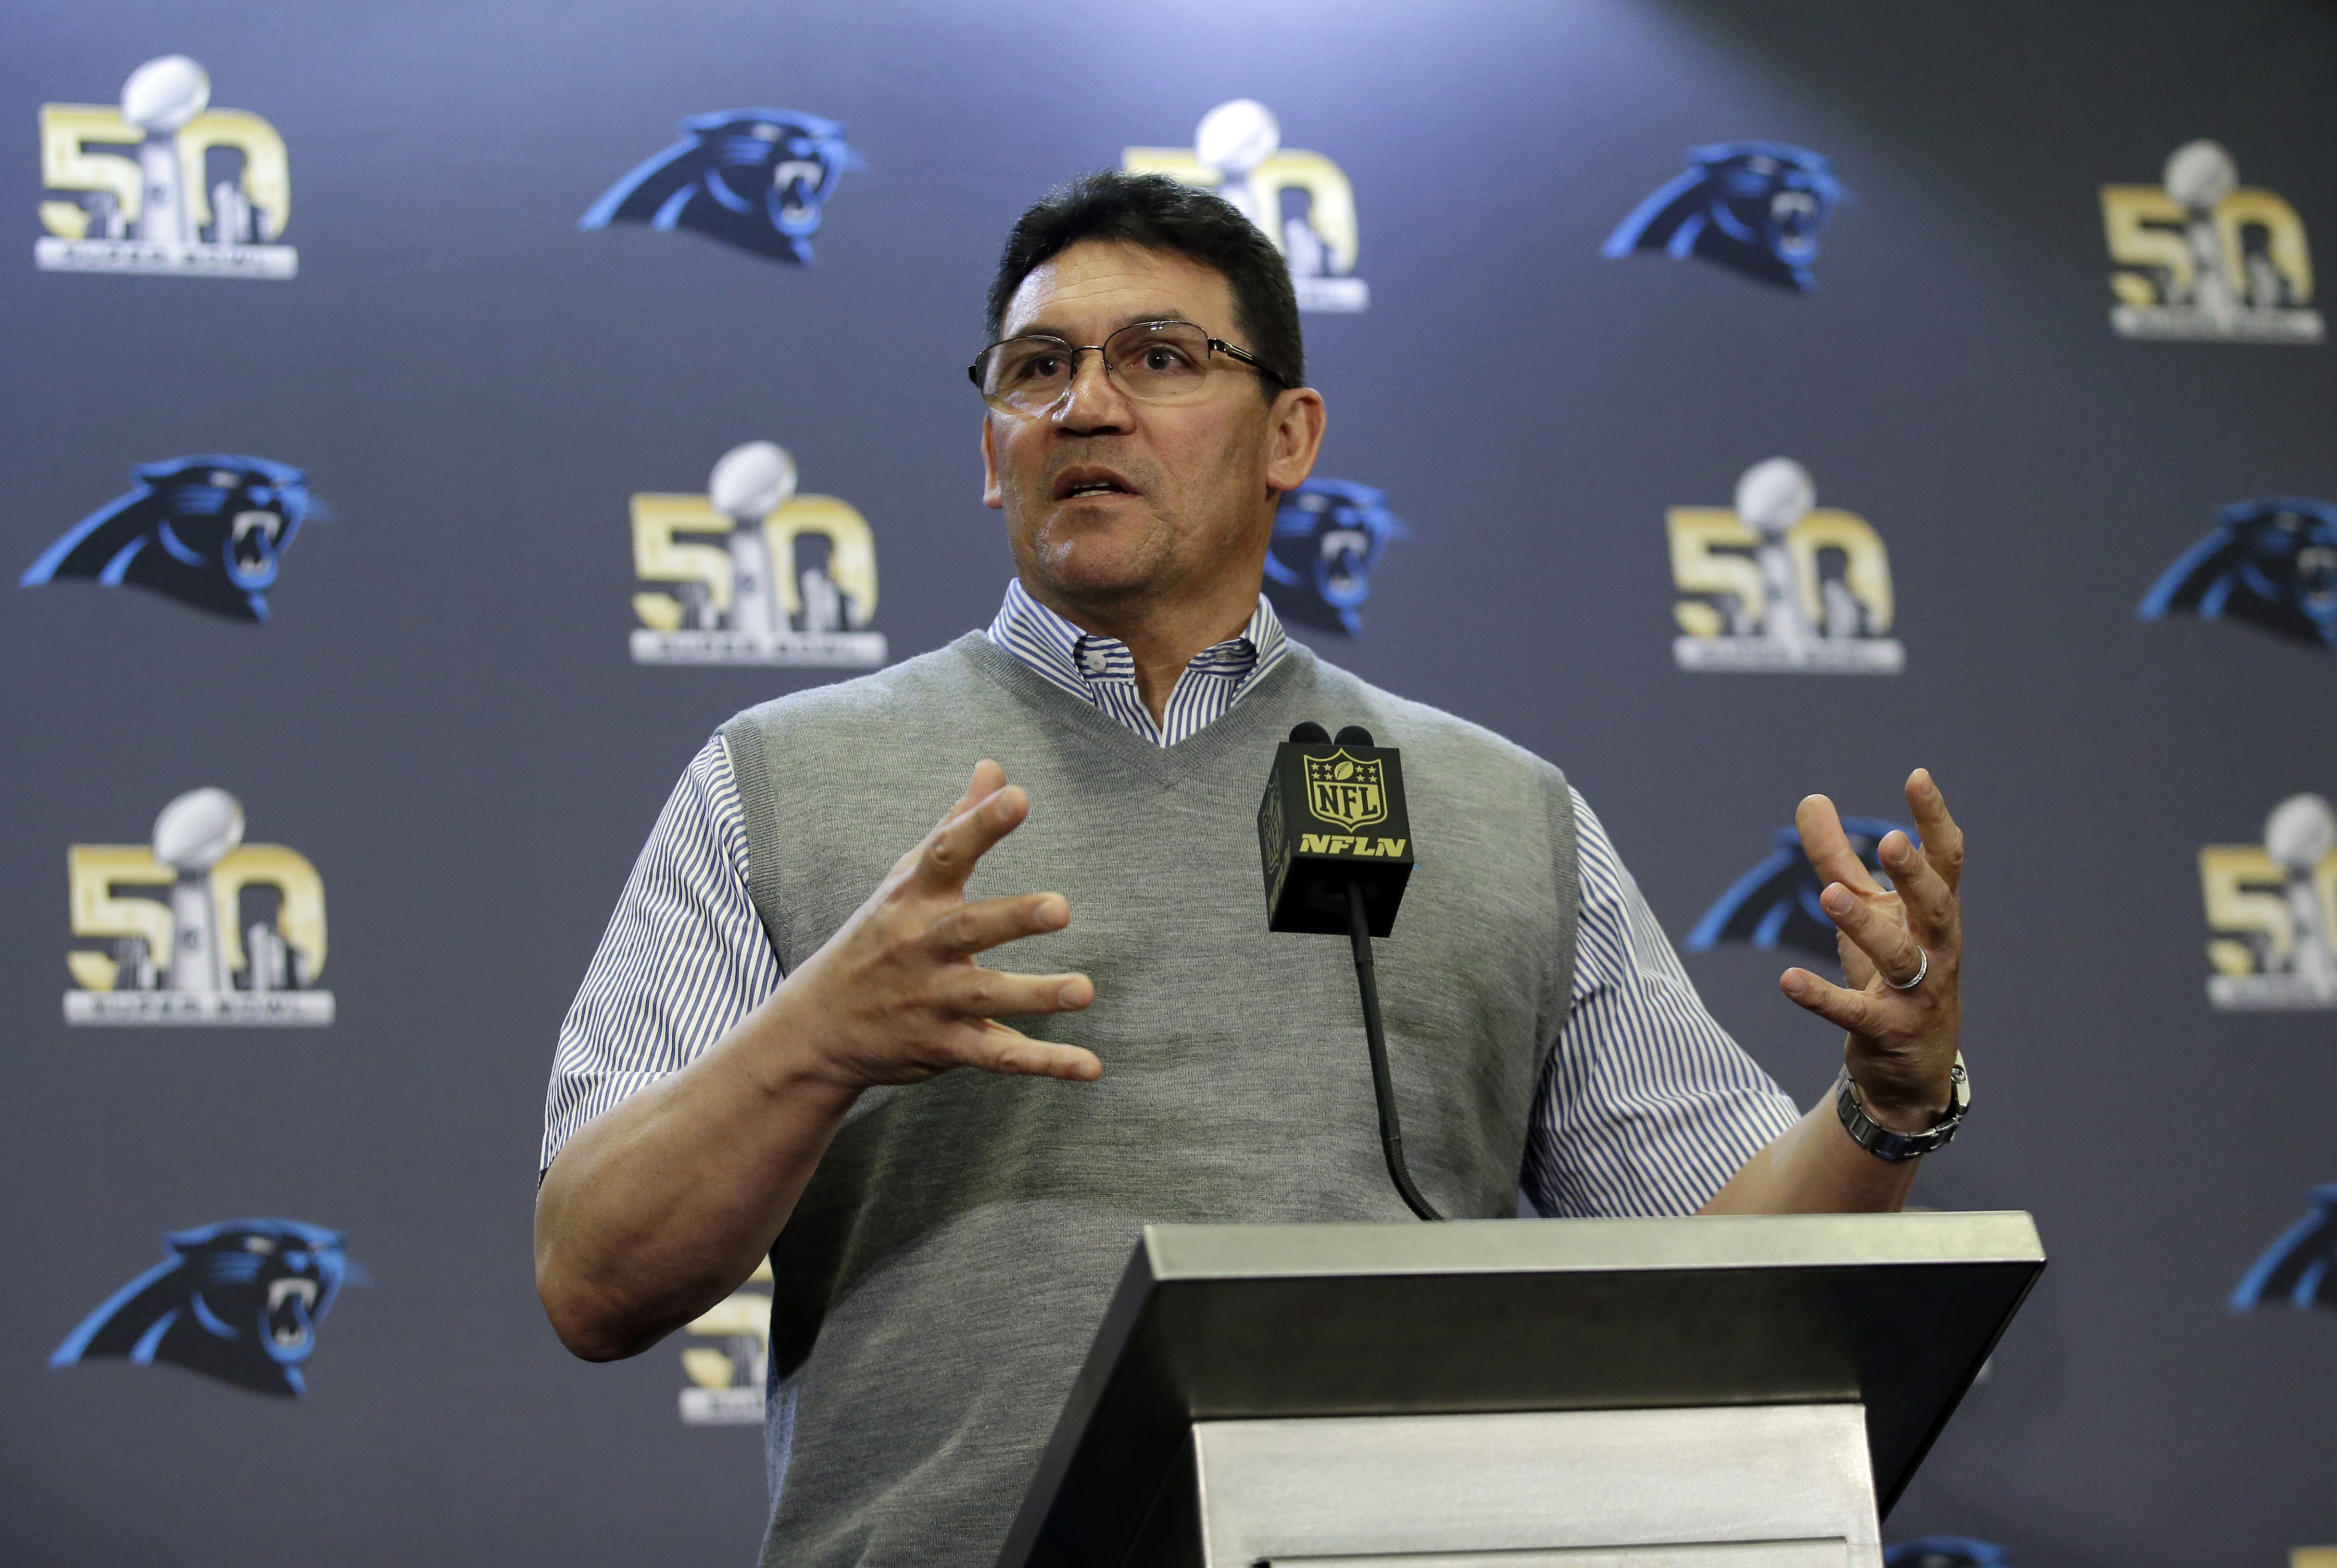 Carolina Panthers head coach Ron Rivera answers questions during a press conference Tuesday, Feb. 2, 2016 in San Jose, Calif. Carolina plays the Denver Broncos in the NFL Super Bowl 50 football game Sunday, Feb. 7, 2015, in Santa Clara, Calif. (AP Photo/M